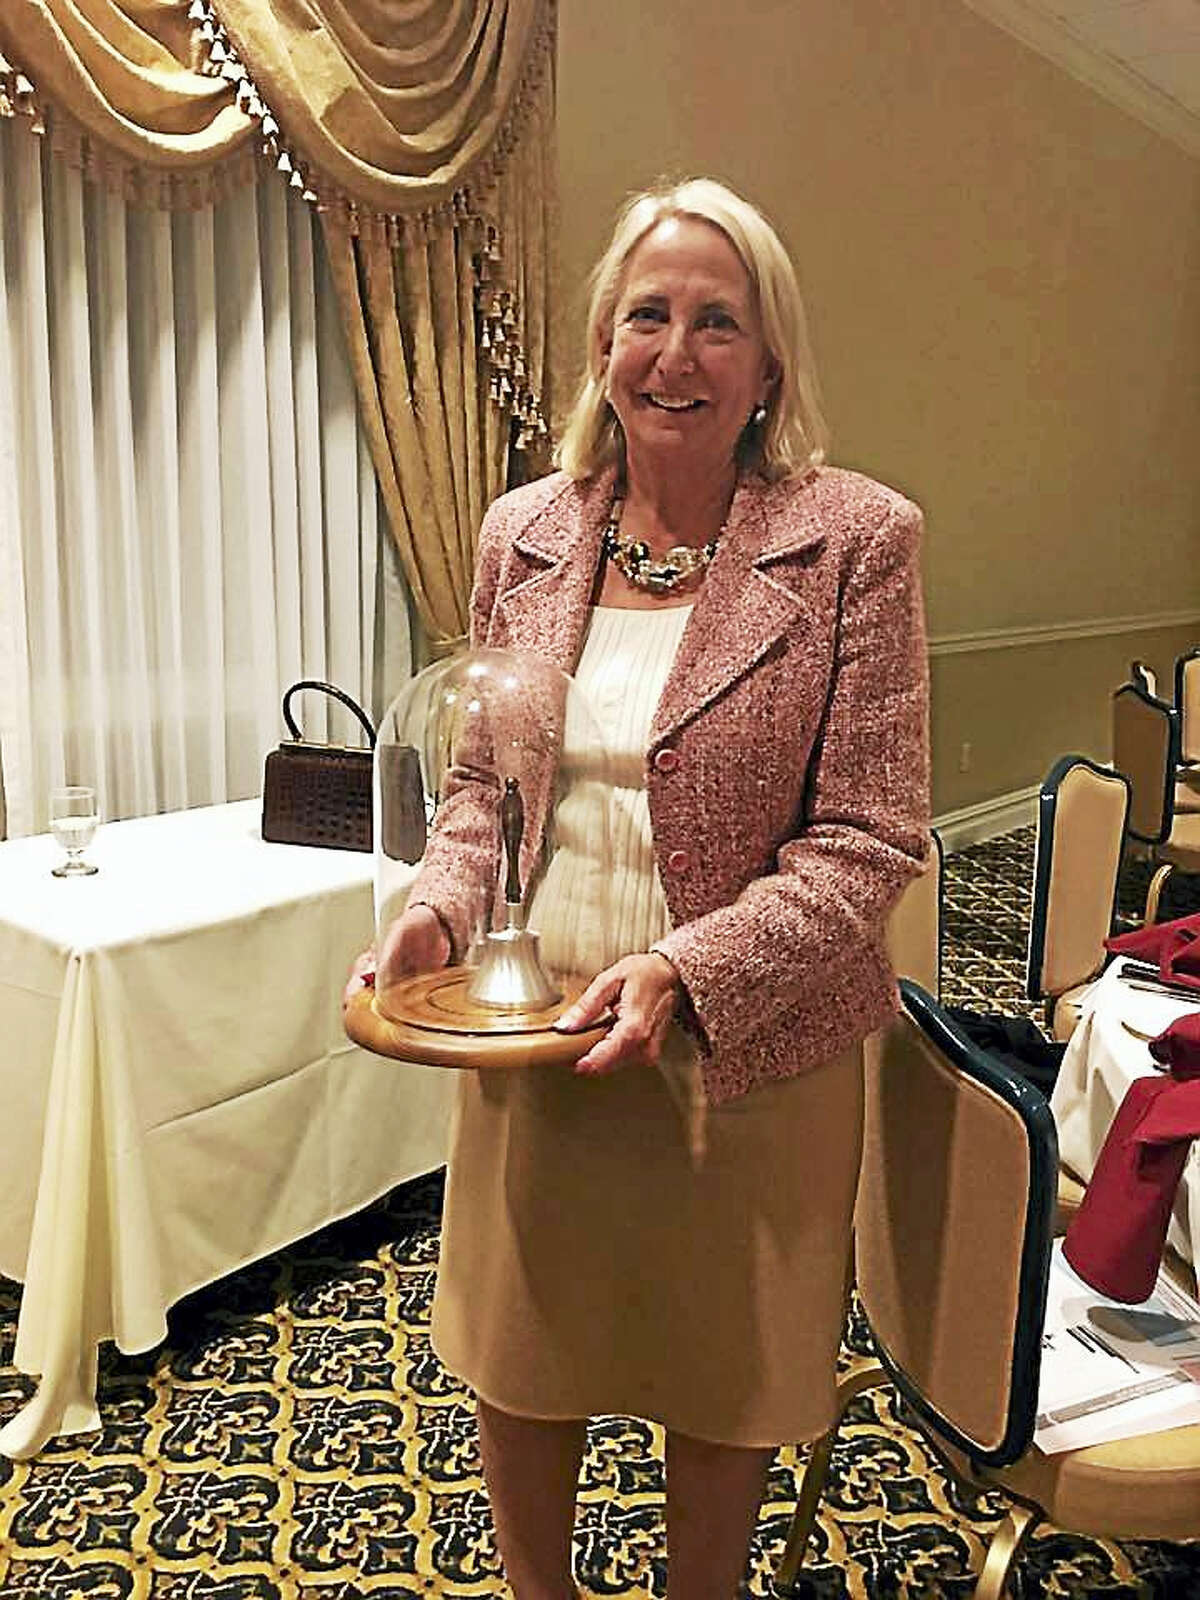 Contributed photoState Rep. Roberta Willis was honored by the Litchfield County Board of Realtors and the Connecticut Homebuilders Association for her many years as a legislator.